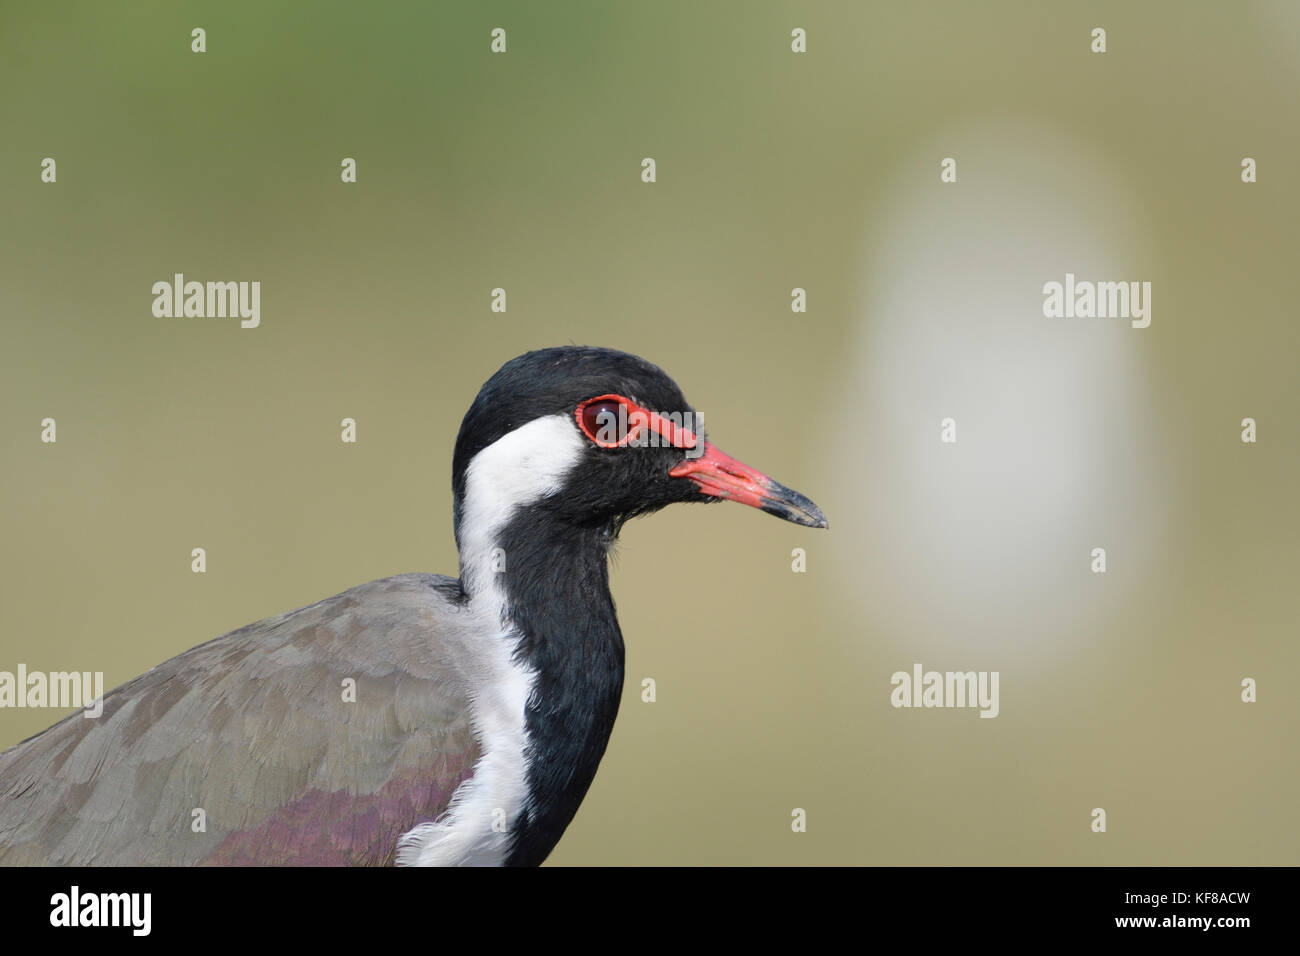 Red wattled pavoncella portret Immagini Stock